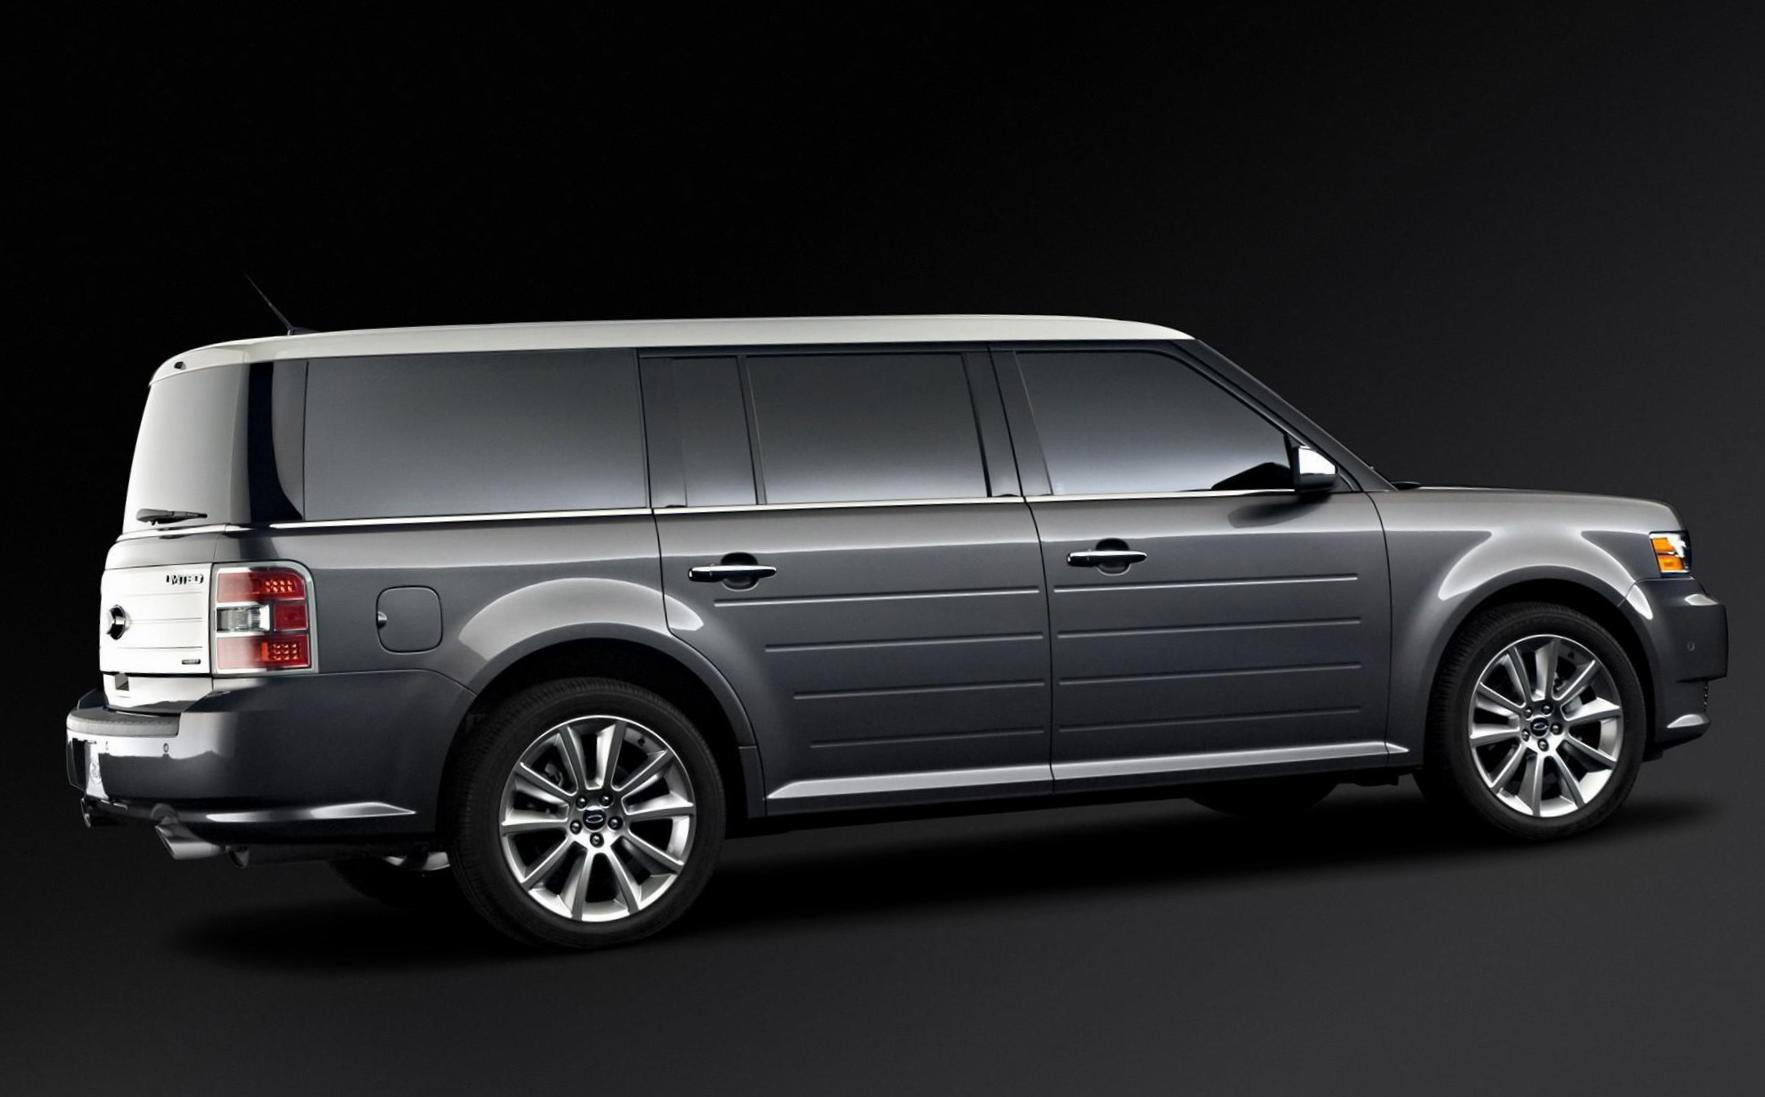 Ford Flex models 2006